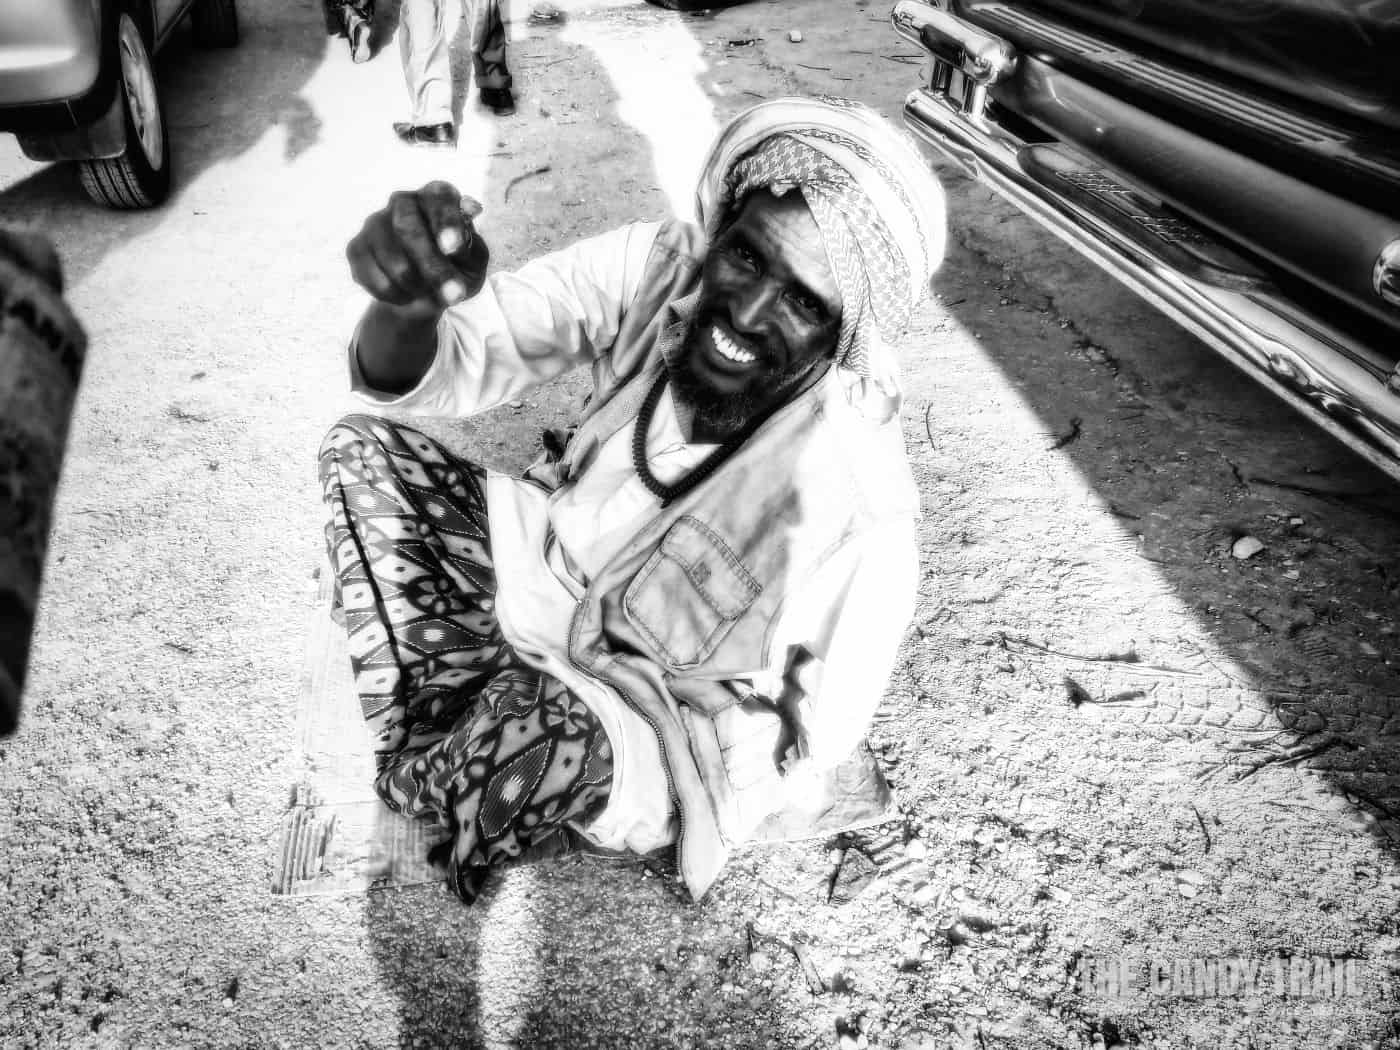 beggar in streets of hargeisa, somaliland.